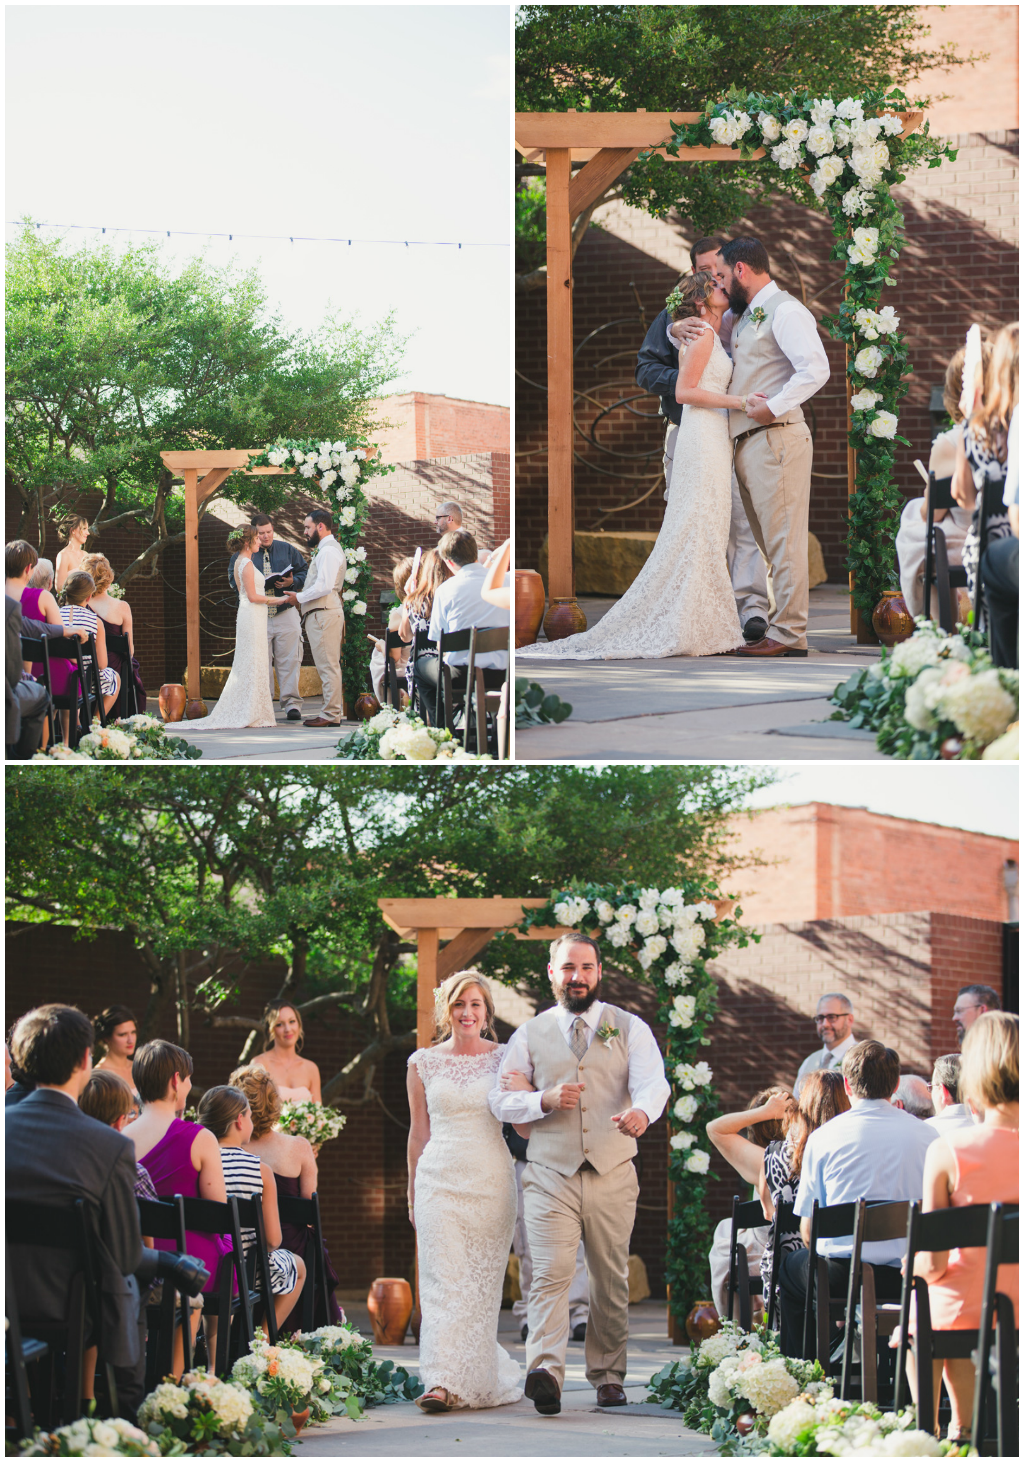 The Grace Museum, timeless and handcrafted wedding ceremony. Jessica Ormond Events - Abilene and Lubbock Texas boutique wedding florist and planner. Mia Coelho Photography.